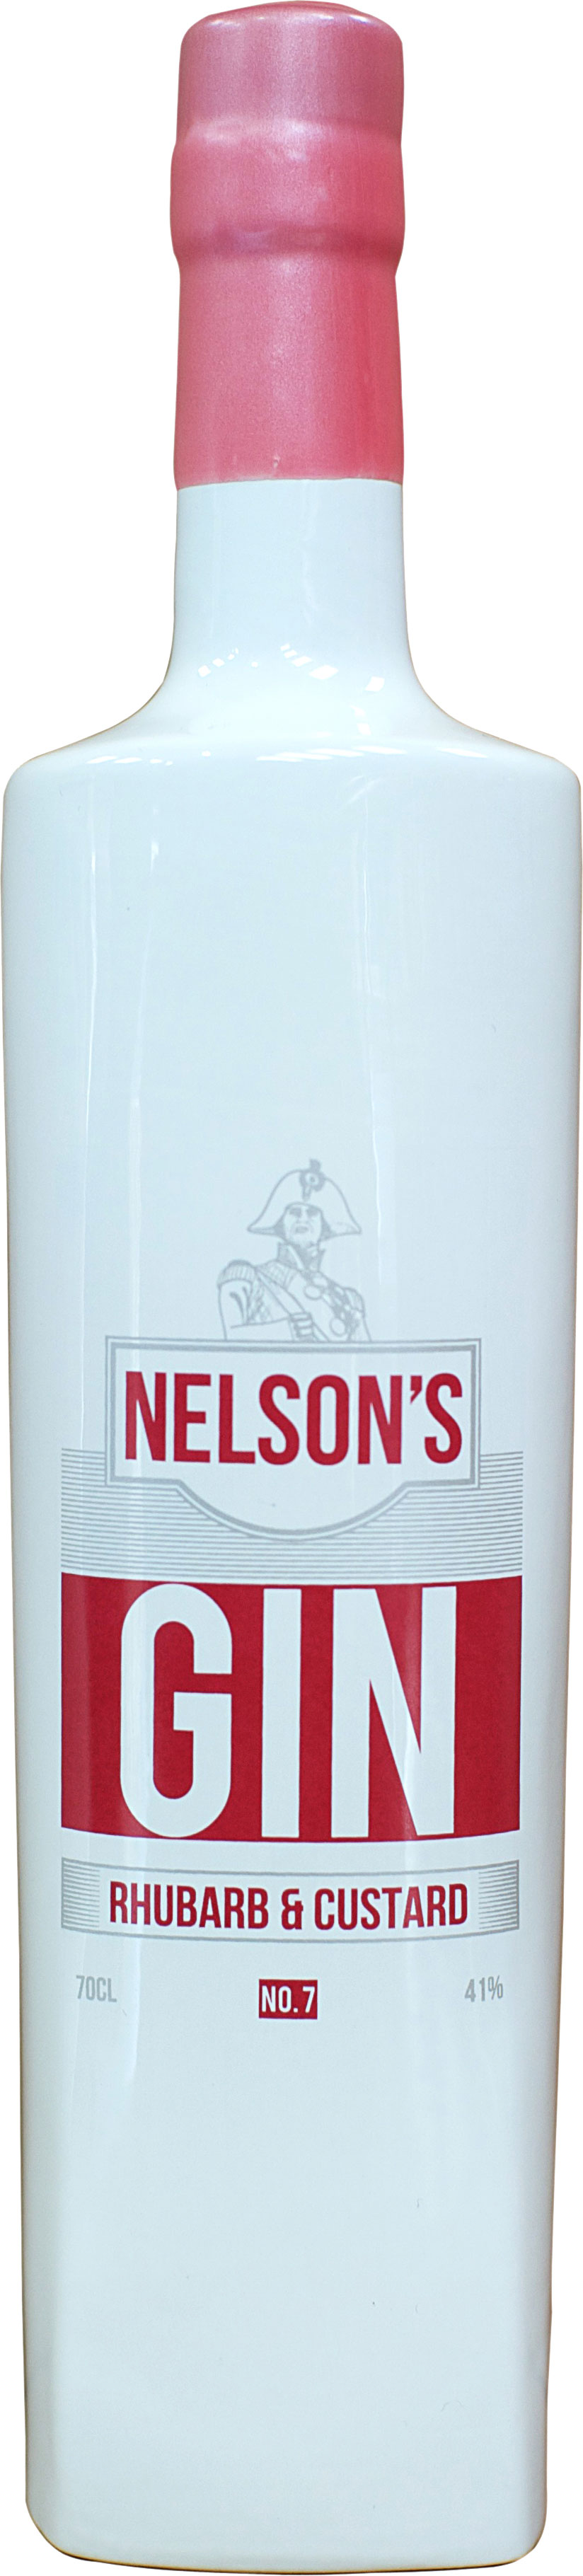 Nelson's - Rhubarb And Custard Gin 70cl Bottle